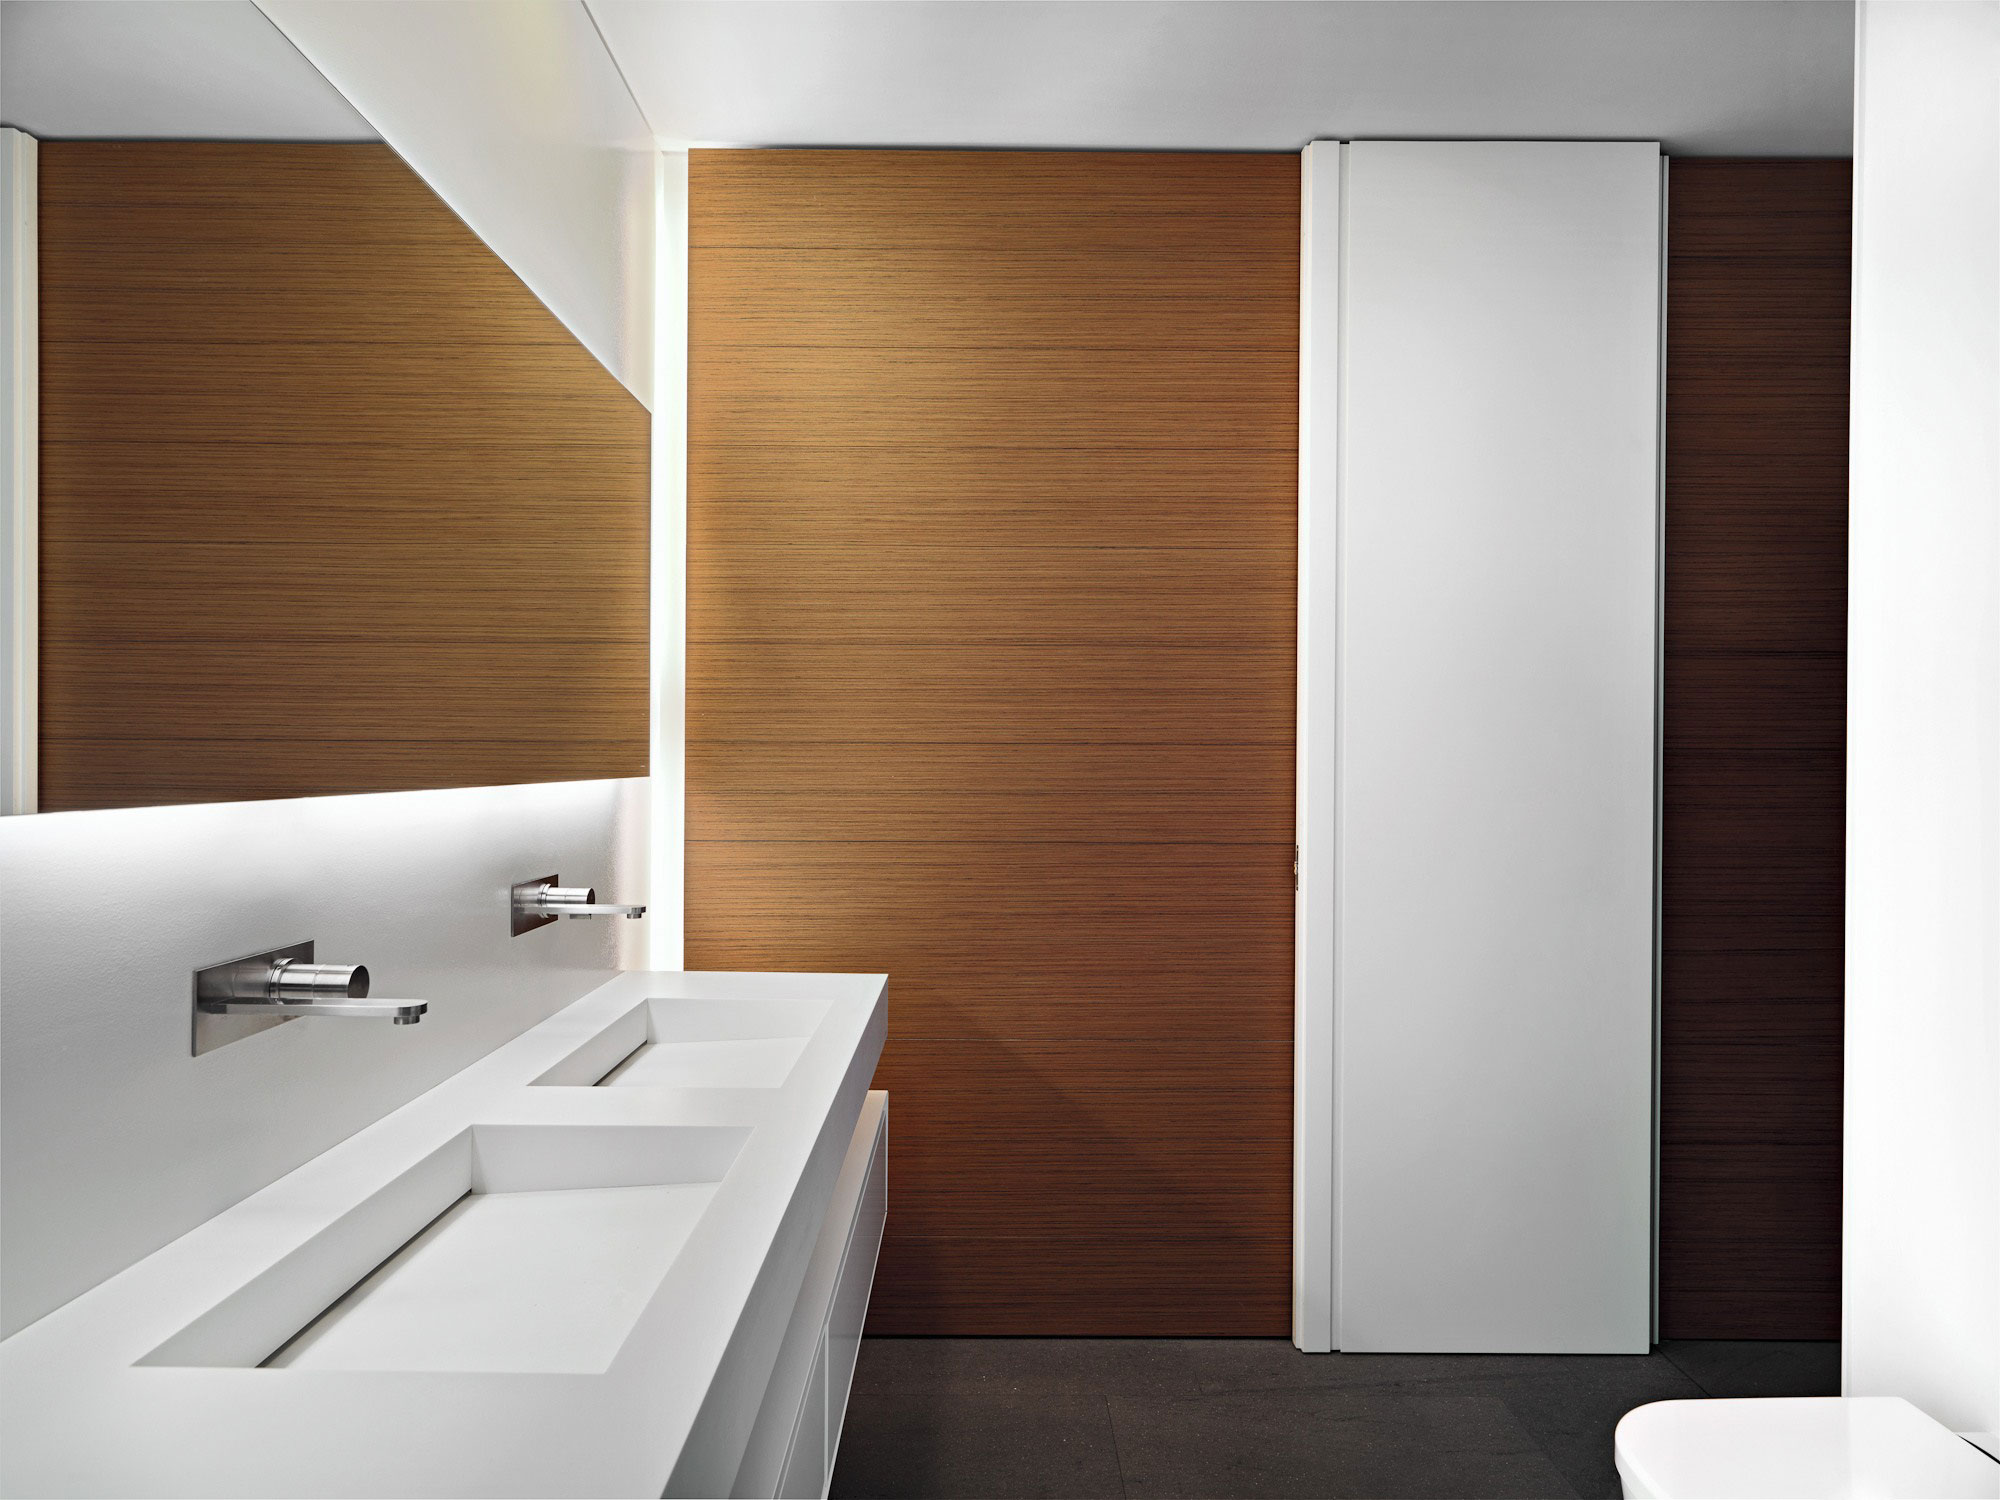 Victor Vasilev Simple And Minimalist White Residence Interior Design: Wooden Wall Paneling Among White Wall In Bathroom